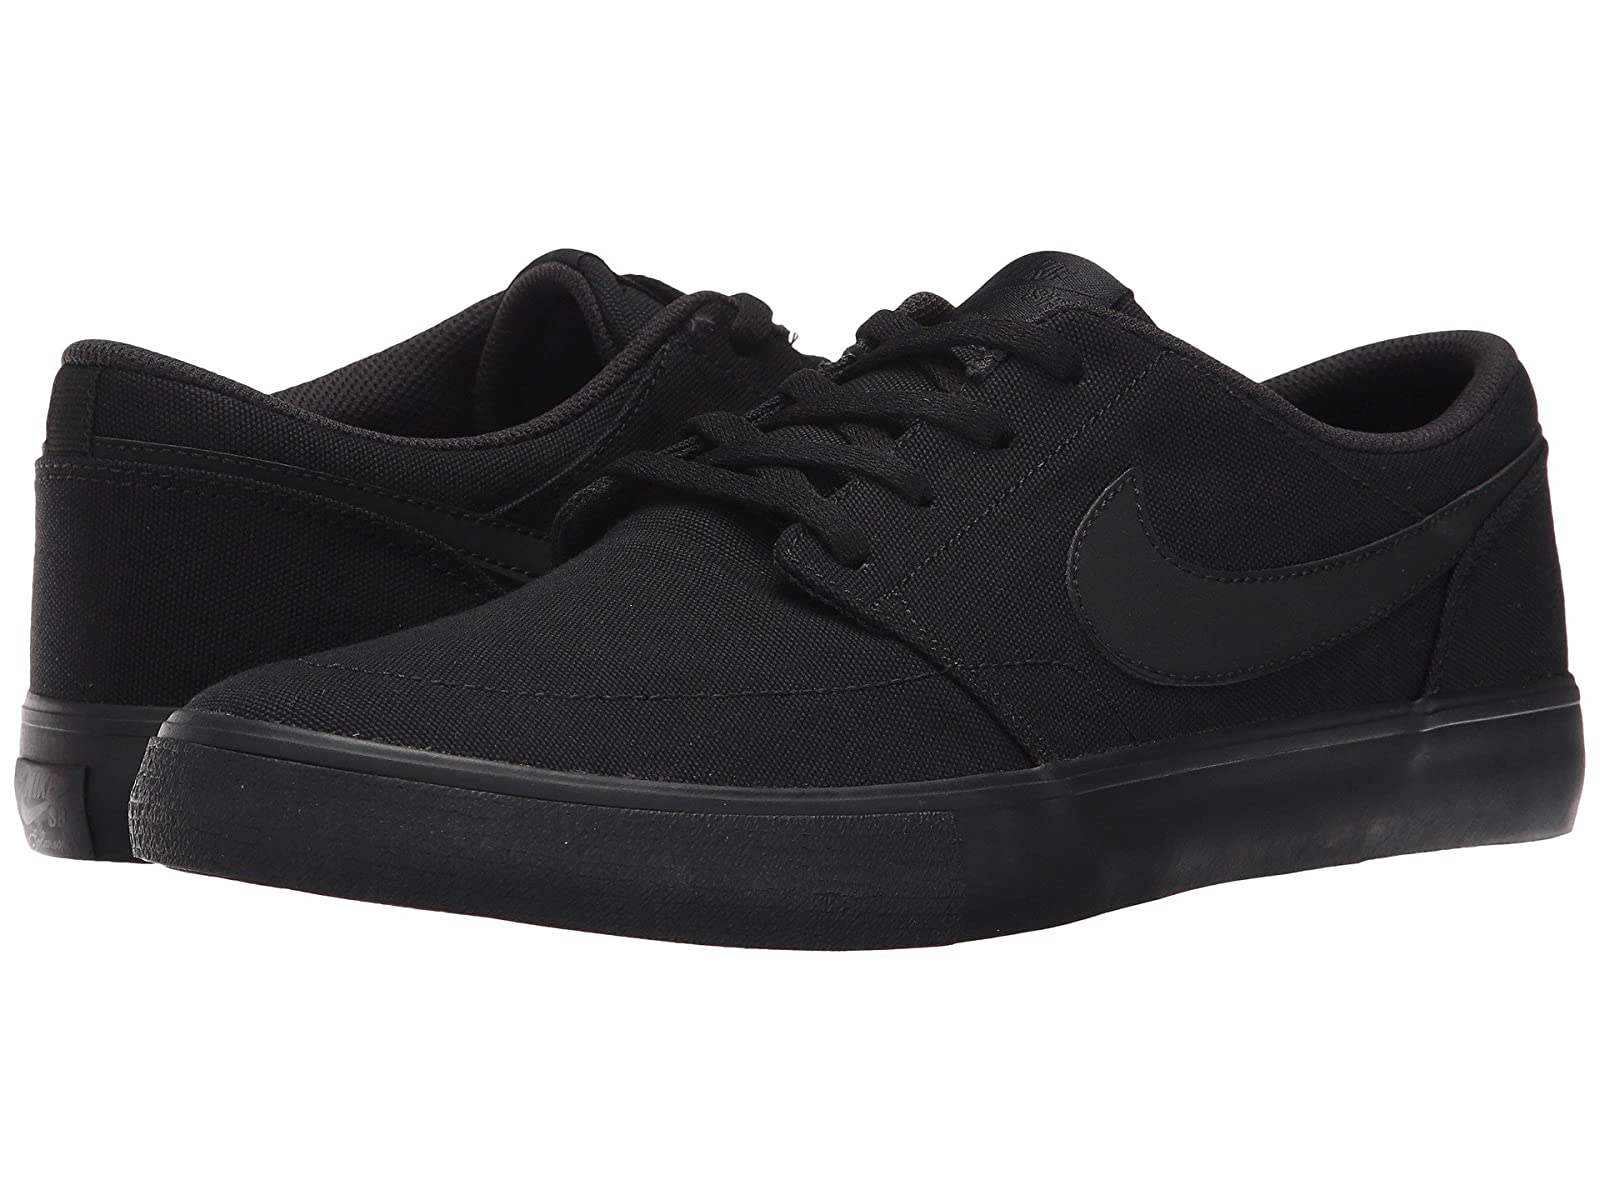 Nike SB Portmore II Solar CanvasAtmospheric grades have affordable shoes